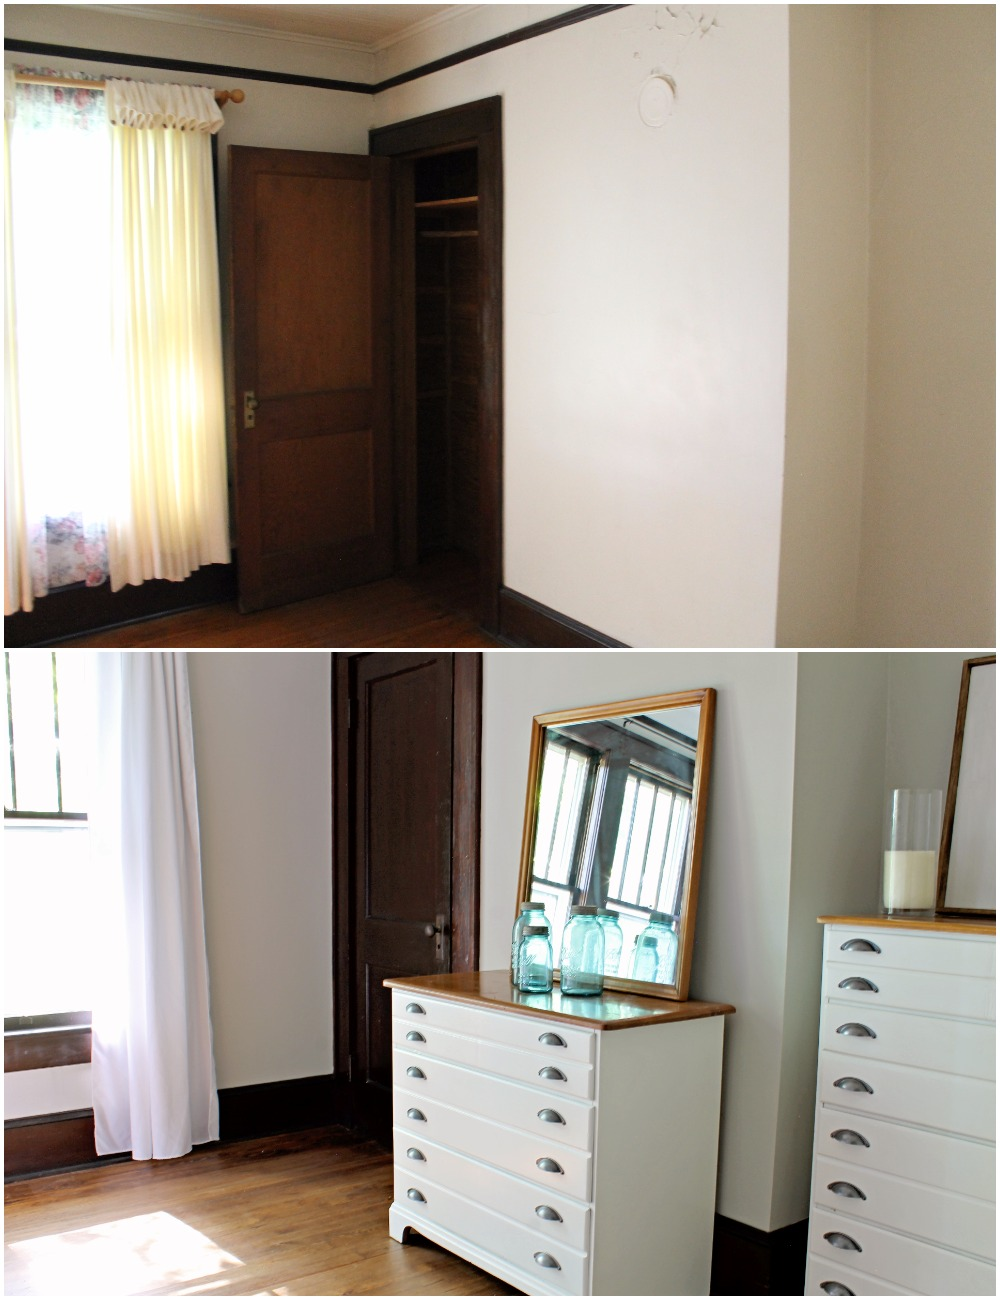 House Flipping Before and Afters - Bedroom Staging Ideas, Wood Trim Paint Colors - Sherwin Williams Repose Gray 10